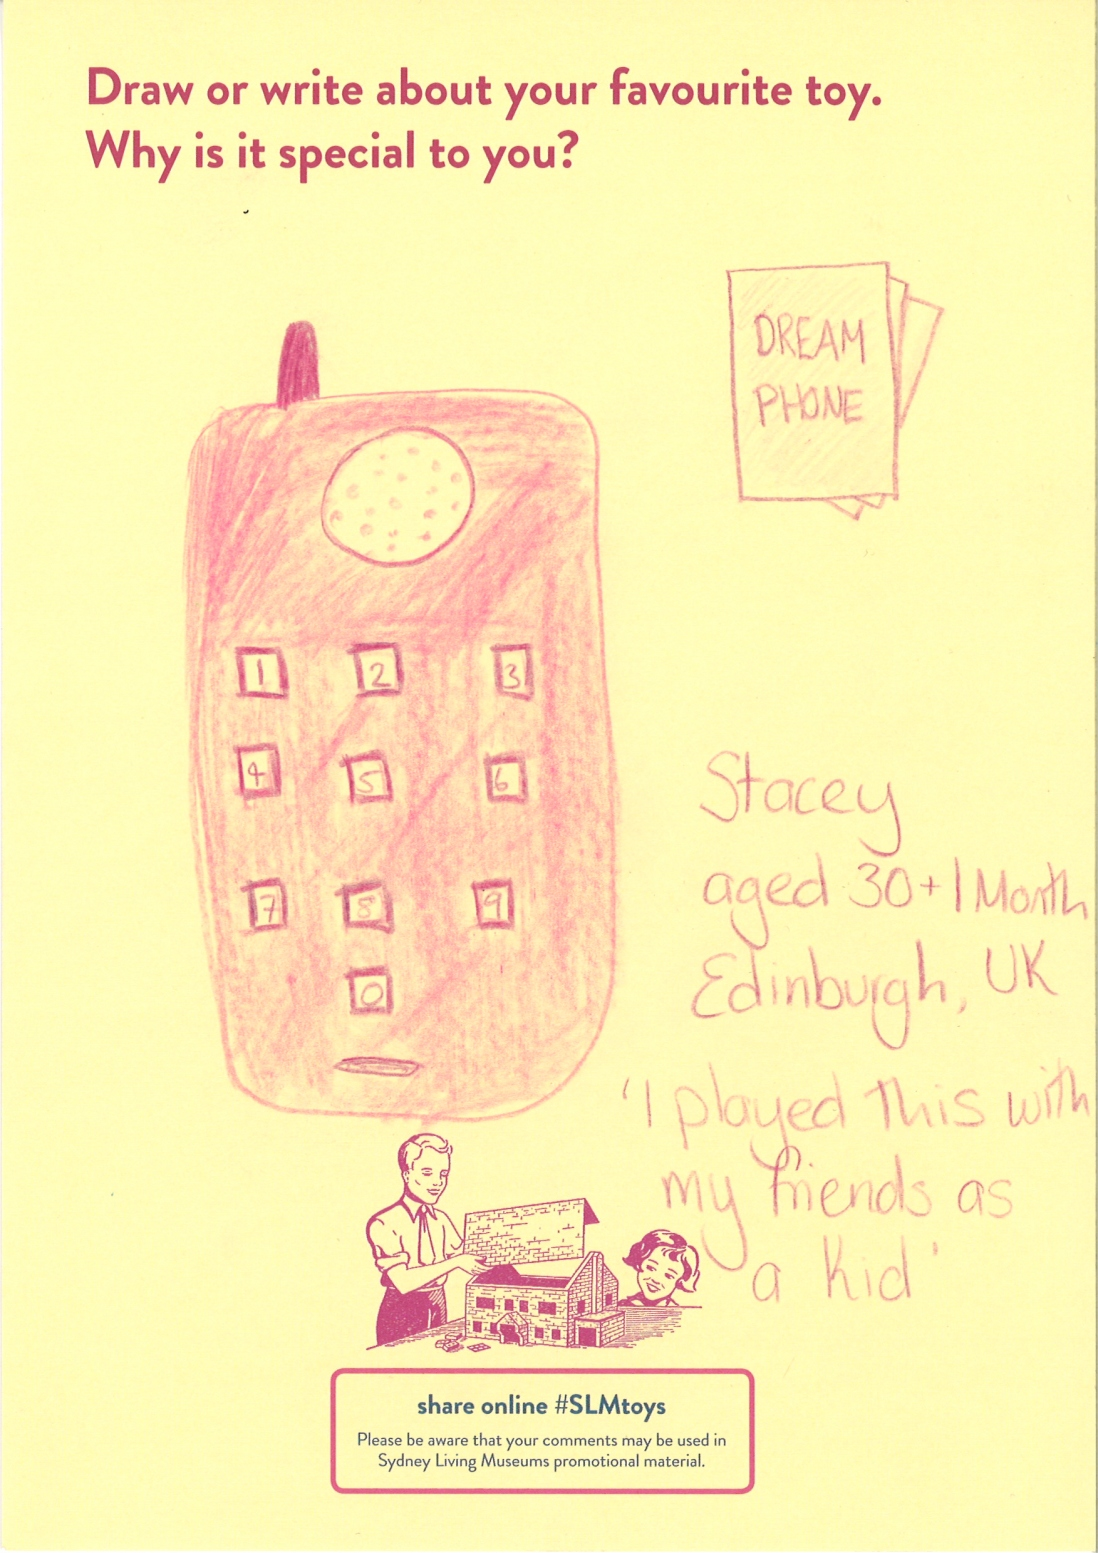 A drawing of a bright pink Barbie toy phone